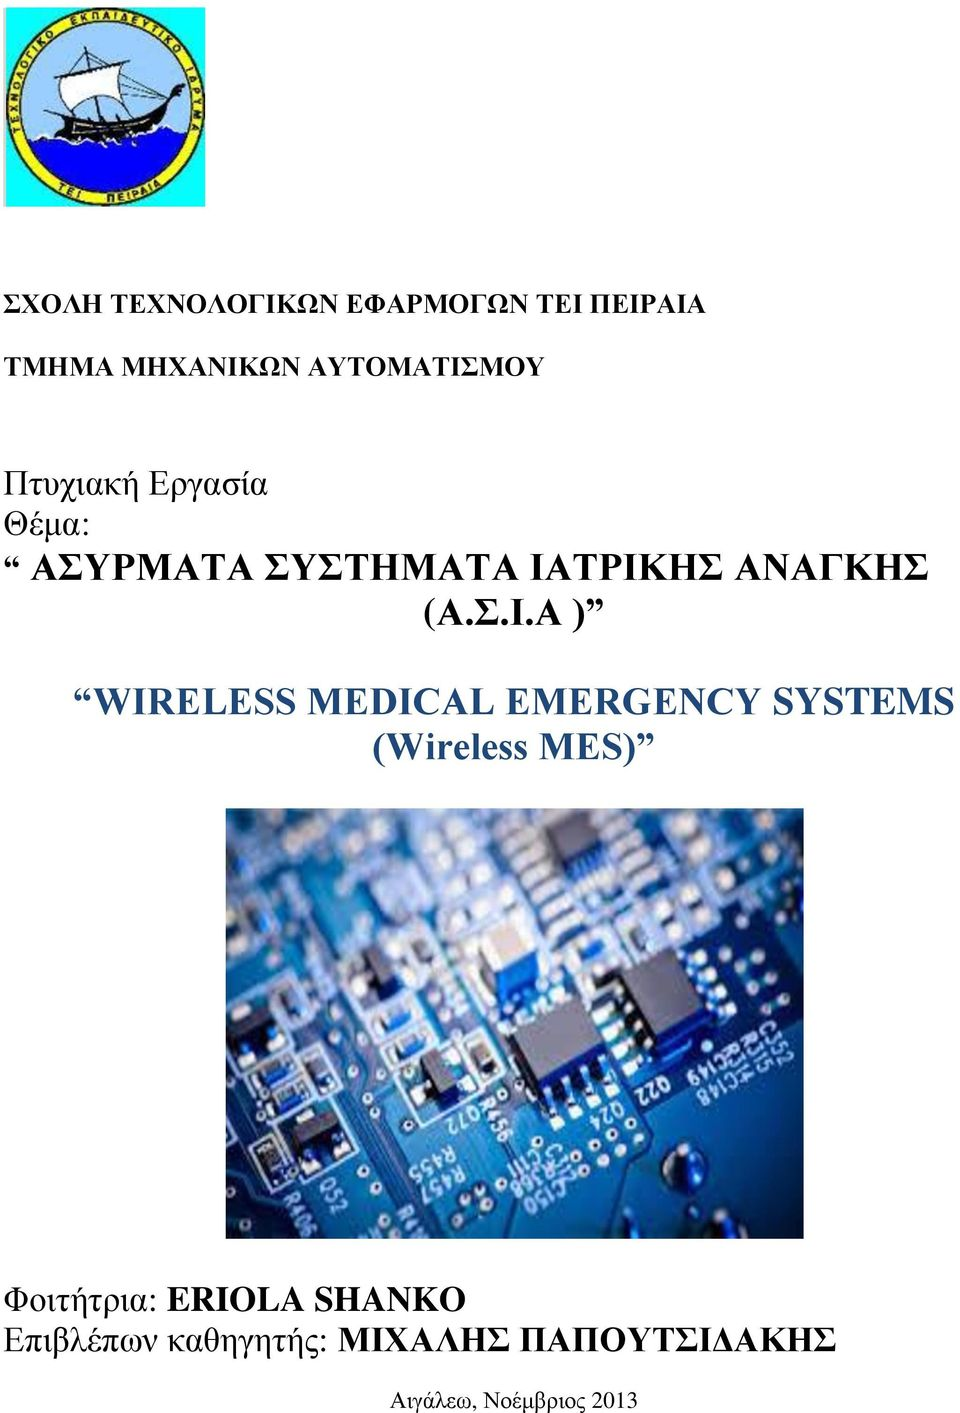 ΤΡΙΚΗΣ ΑΝΑΓΚΗΣ (Α.Σ.Ι.Α ) WIRELESS MEDICAL EMERGENCY SYSTEMS (Wireless